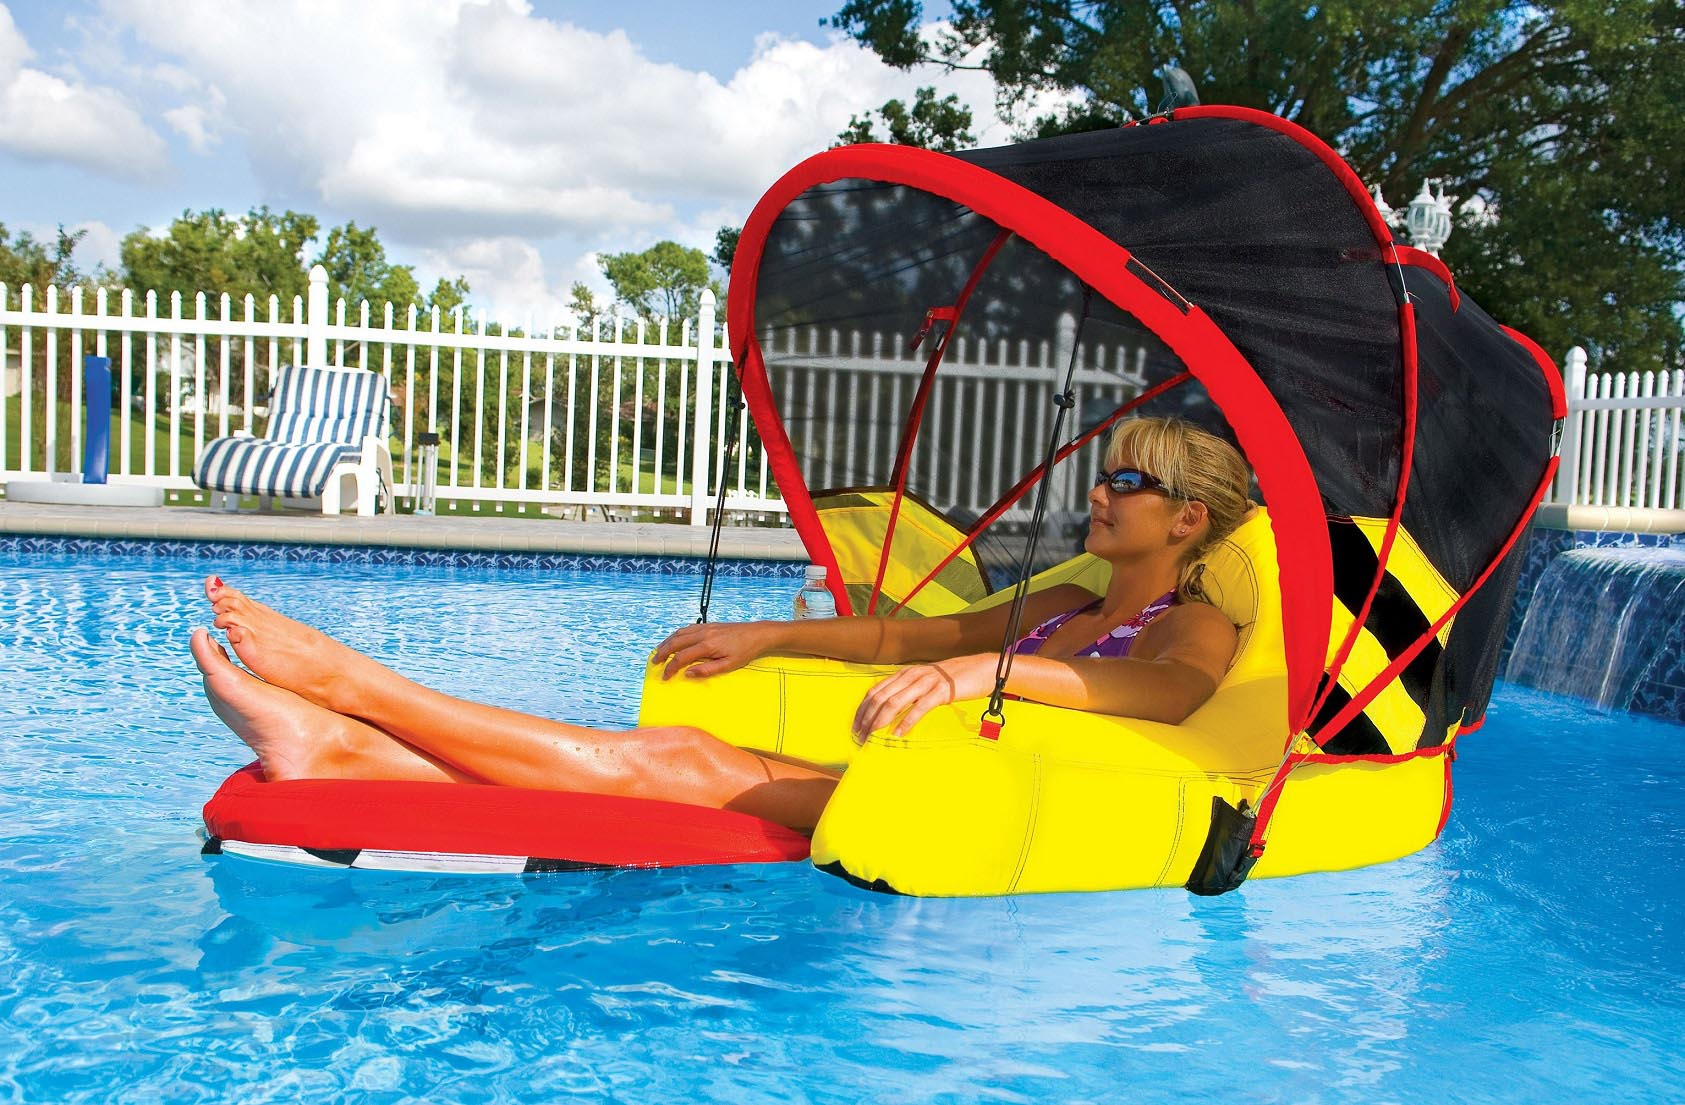 Cool Pool Toys for Adults